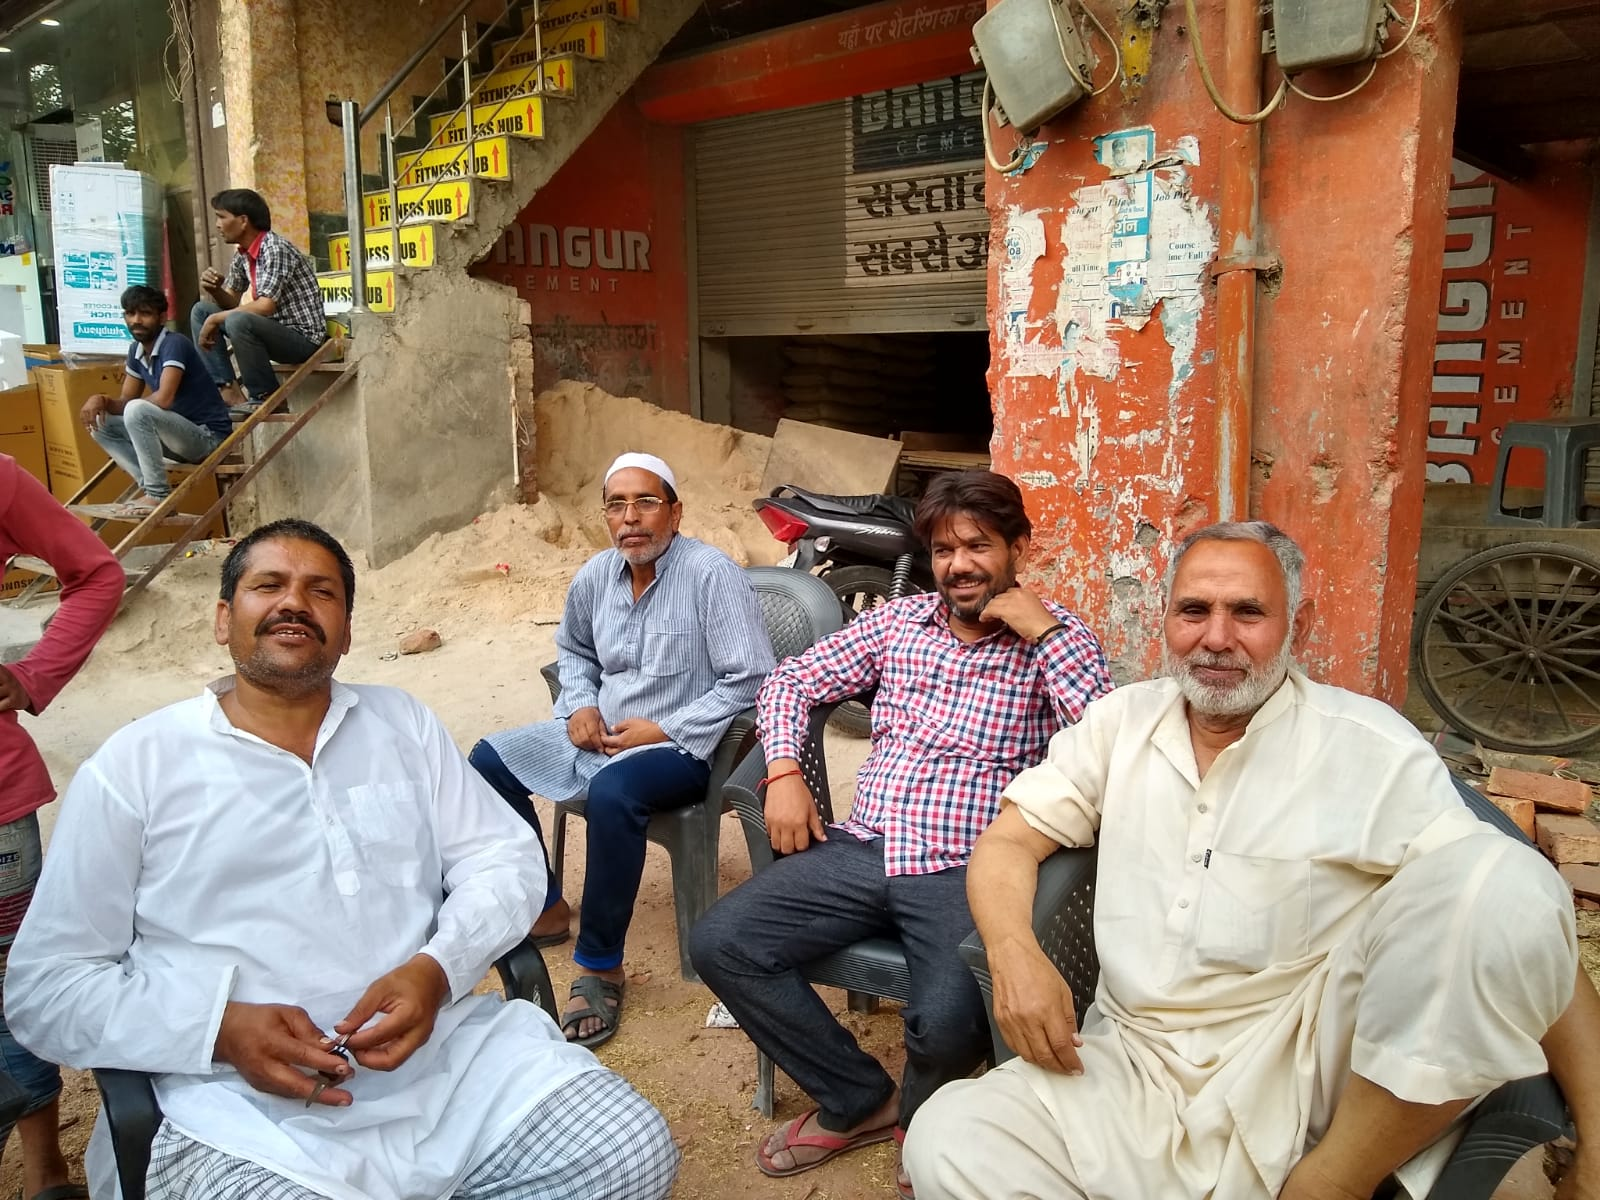 Dairy farmer Anil Pehalwan (left) and property dealer Jian Mohammed (right) talk politics in Brahmapuri, New Delhi.